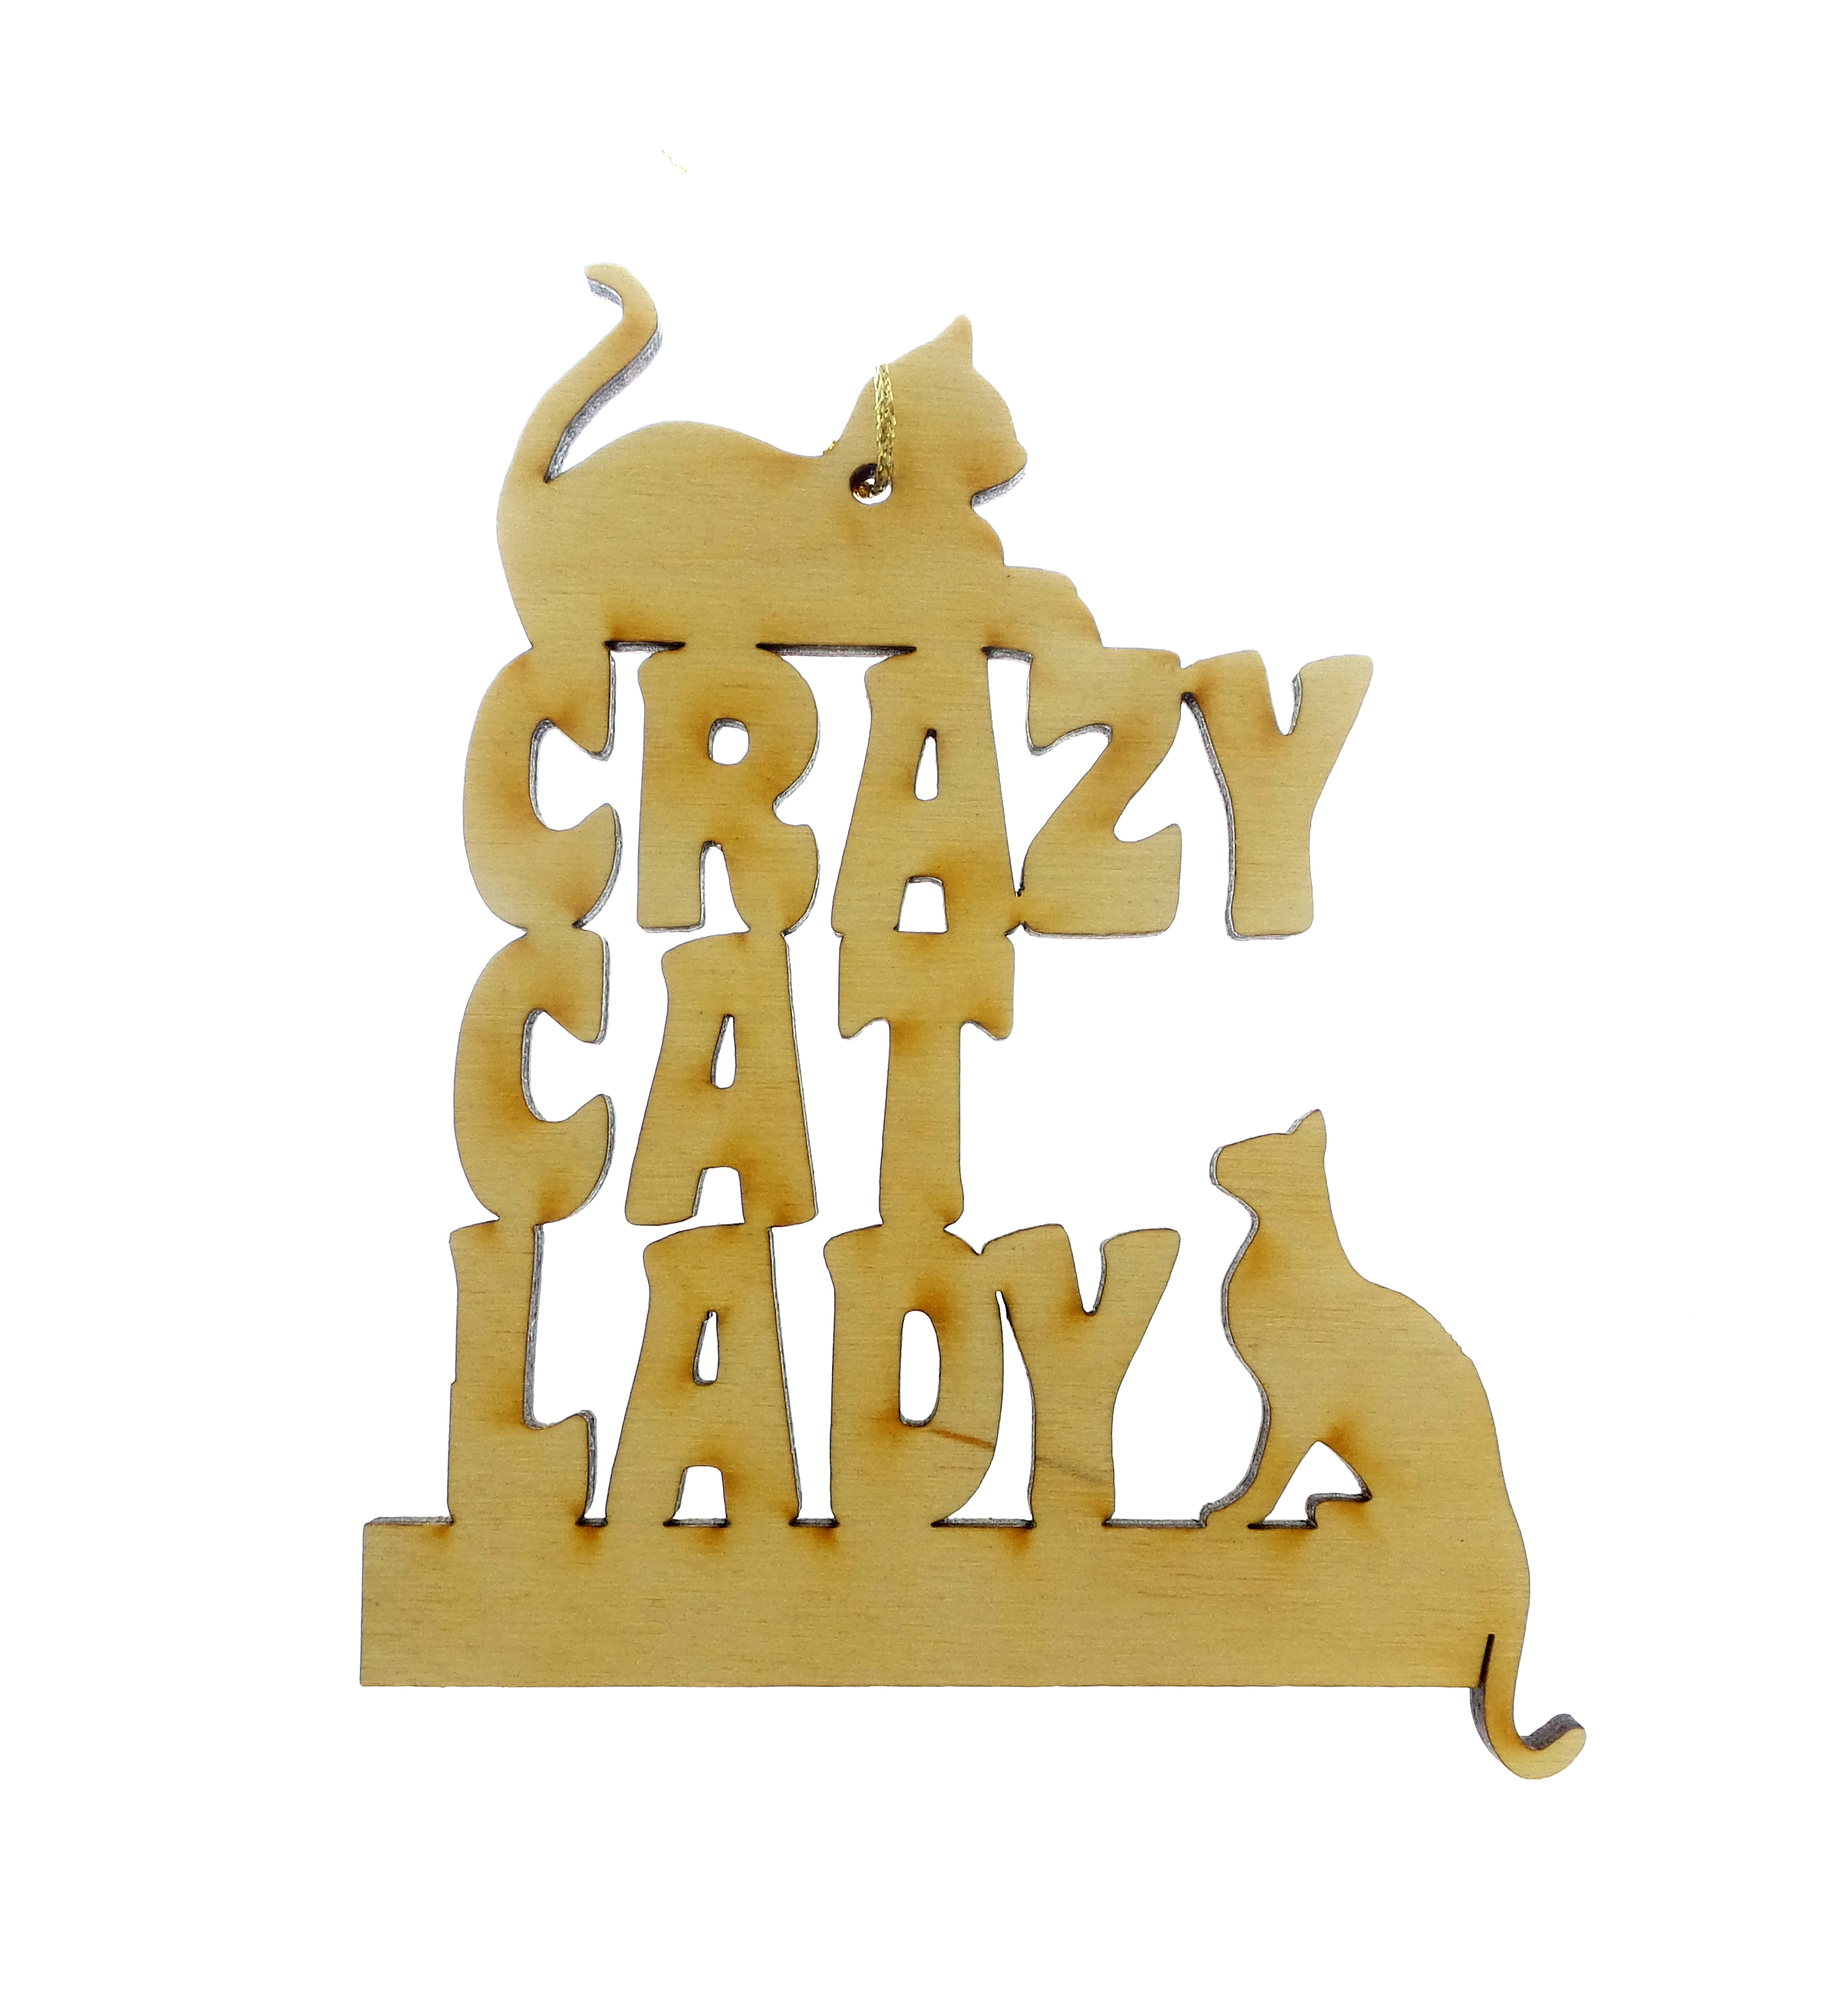 CAT015CrazyCatLady